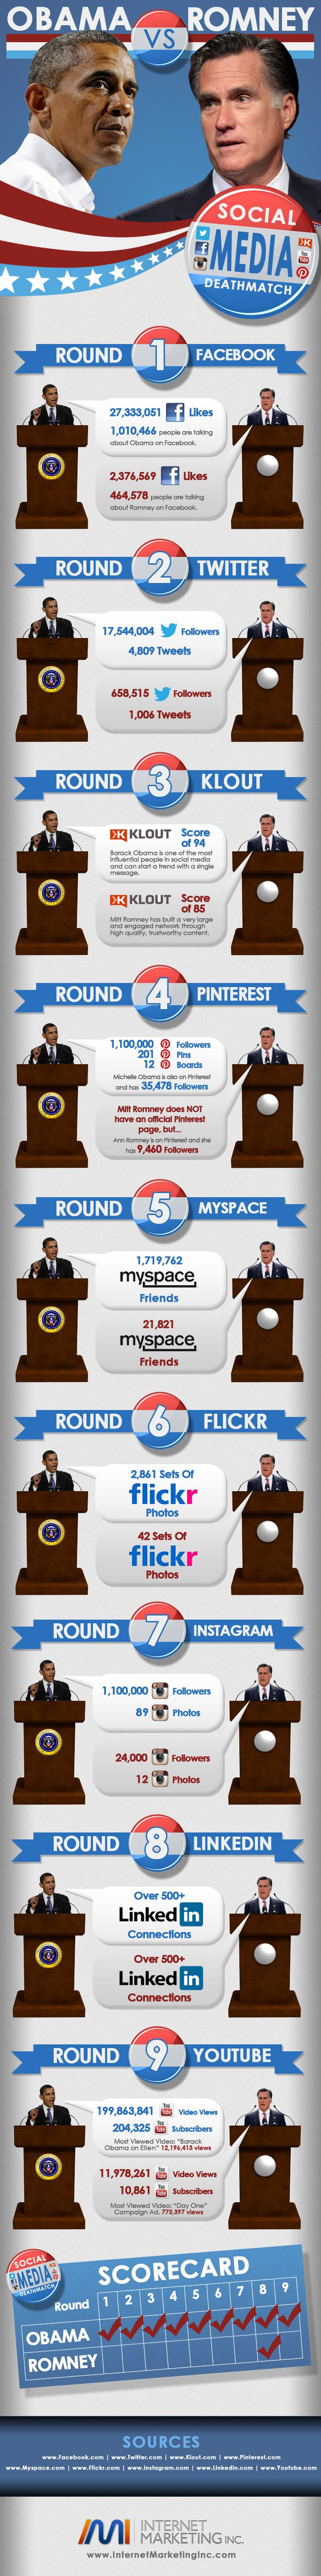 Social Media Deathmatch. Published on August 6th, source: http://www.internetmarketinginc.com/blog/social-media-showdown-obama-vs-romney/